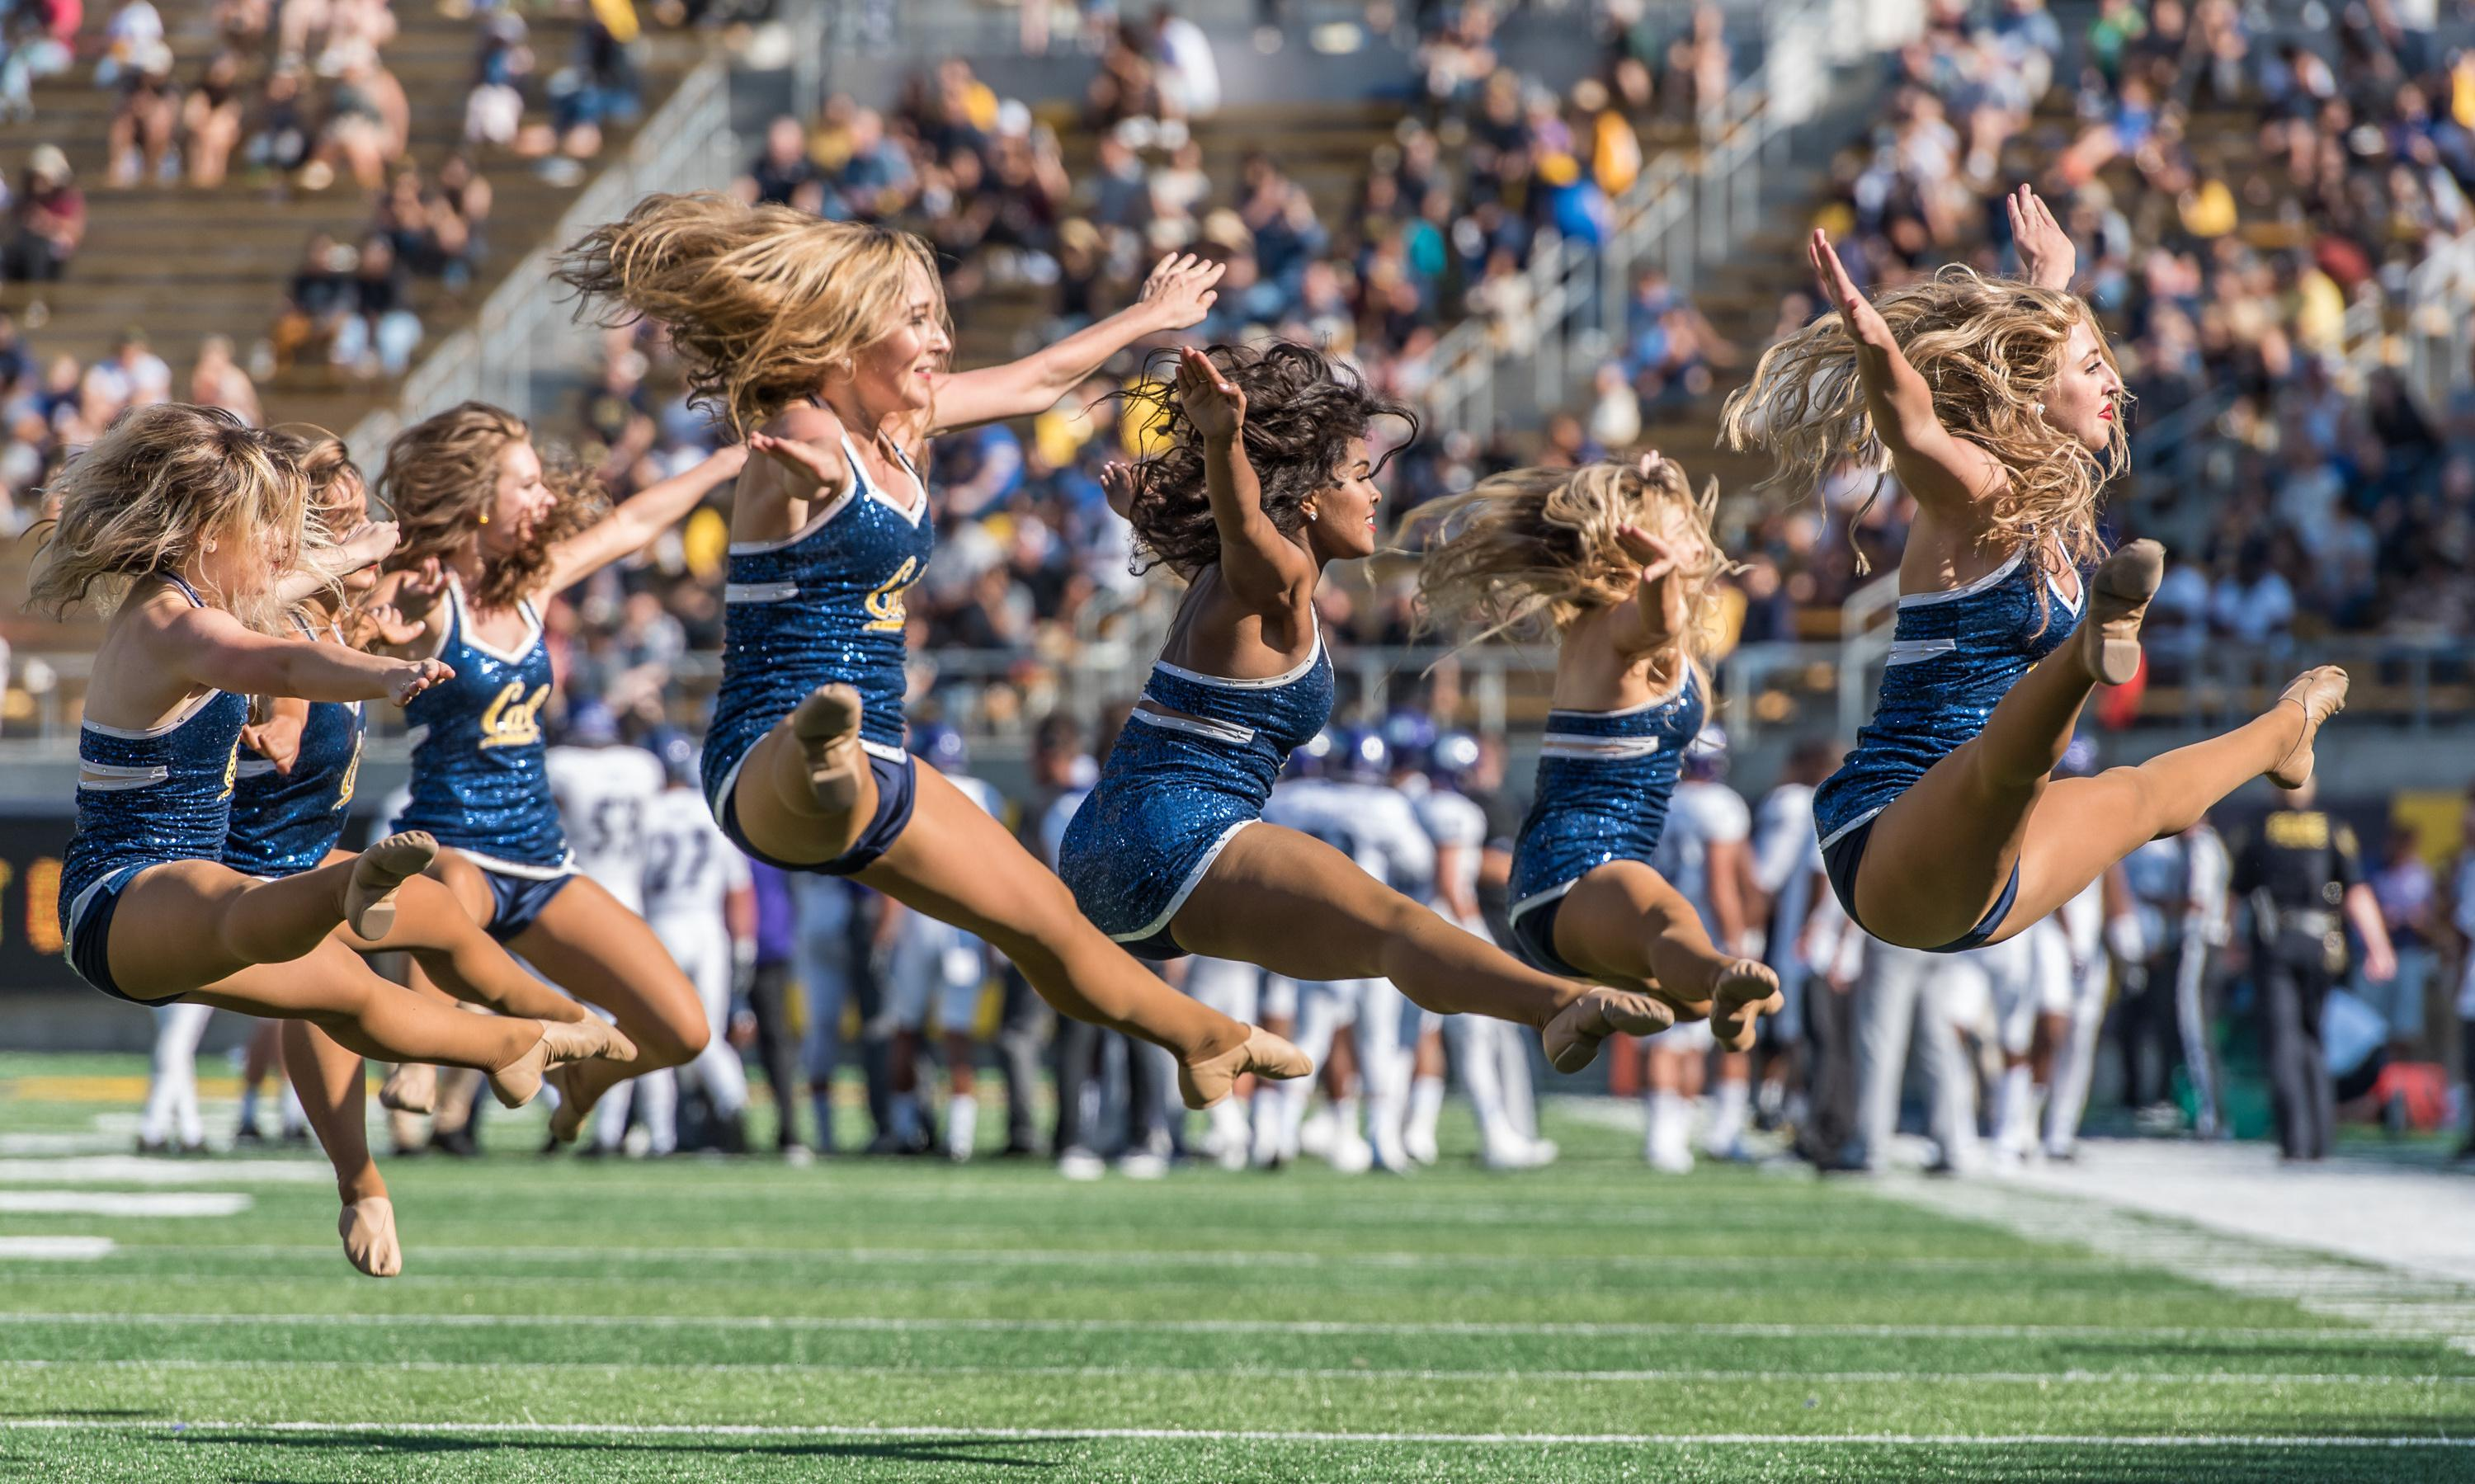 Former UC Berkeley cheerleader says coaches ignored concussions in lawsuit